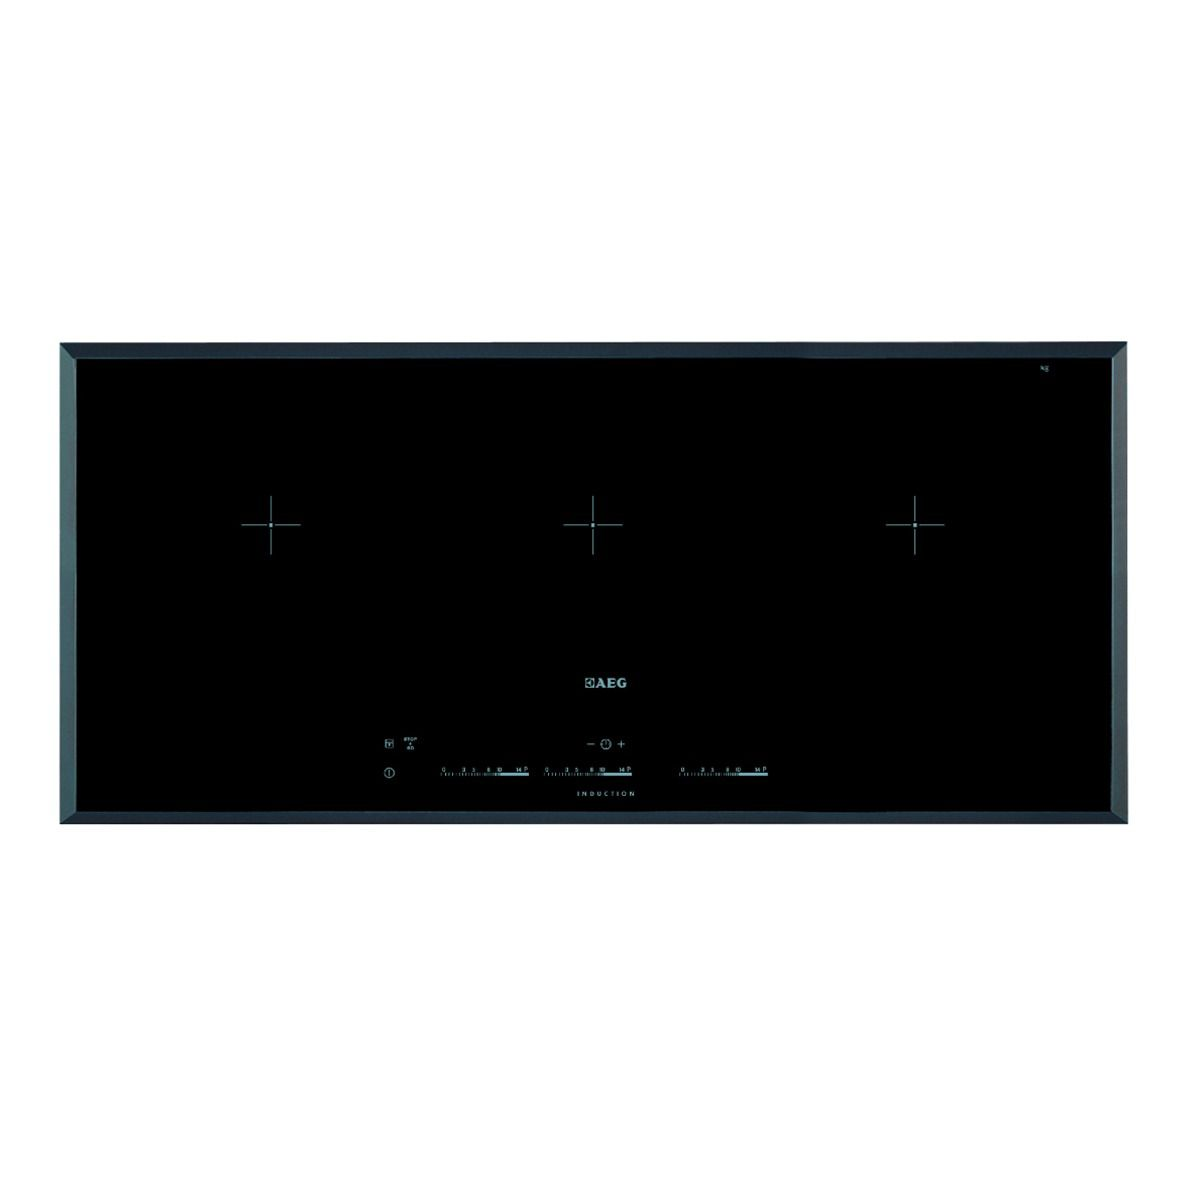 AEG 3 Zone Maxisense Flexi Induction Hob Black HK953400FB | Wickes.co.uk